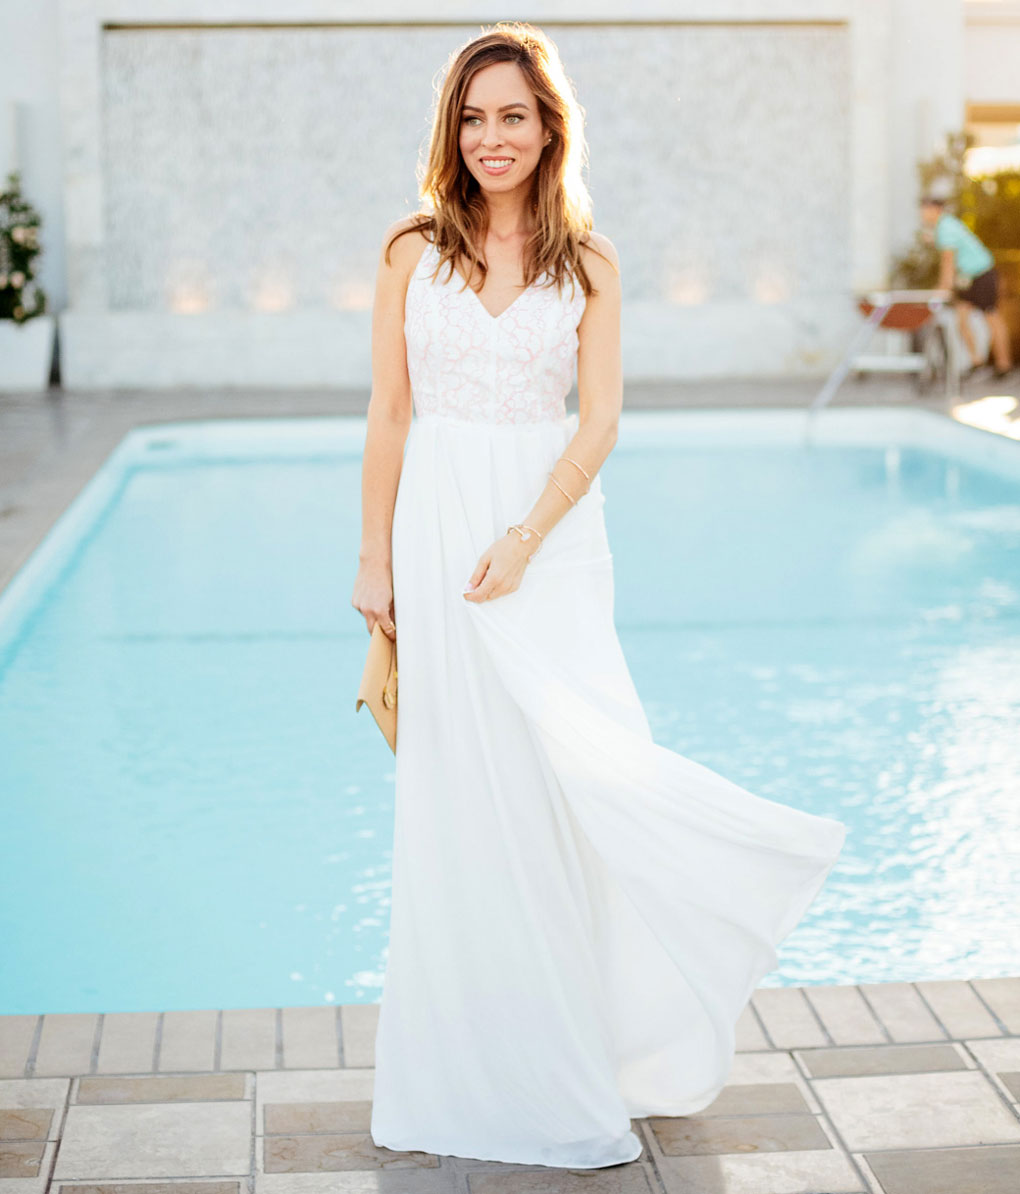 Sydne Style wears a fame and partners white maxi dress